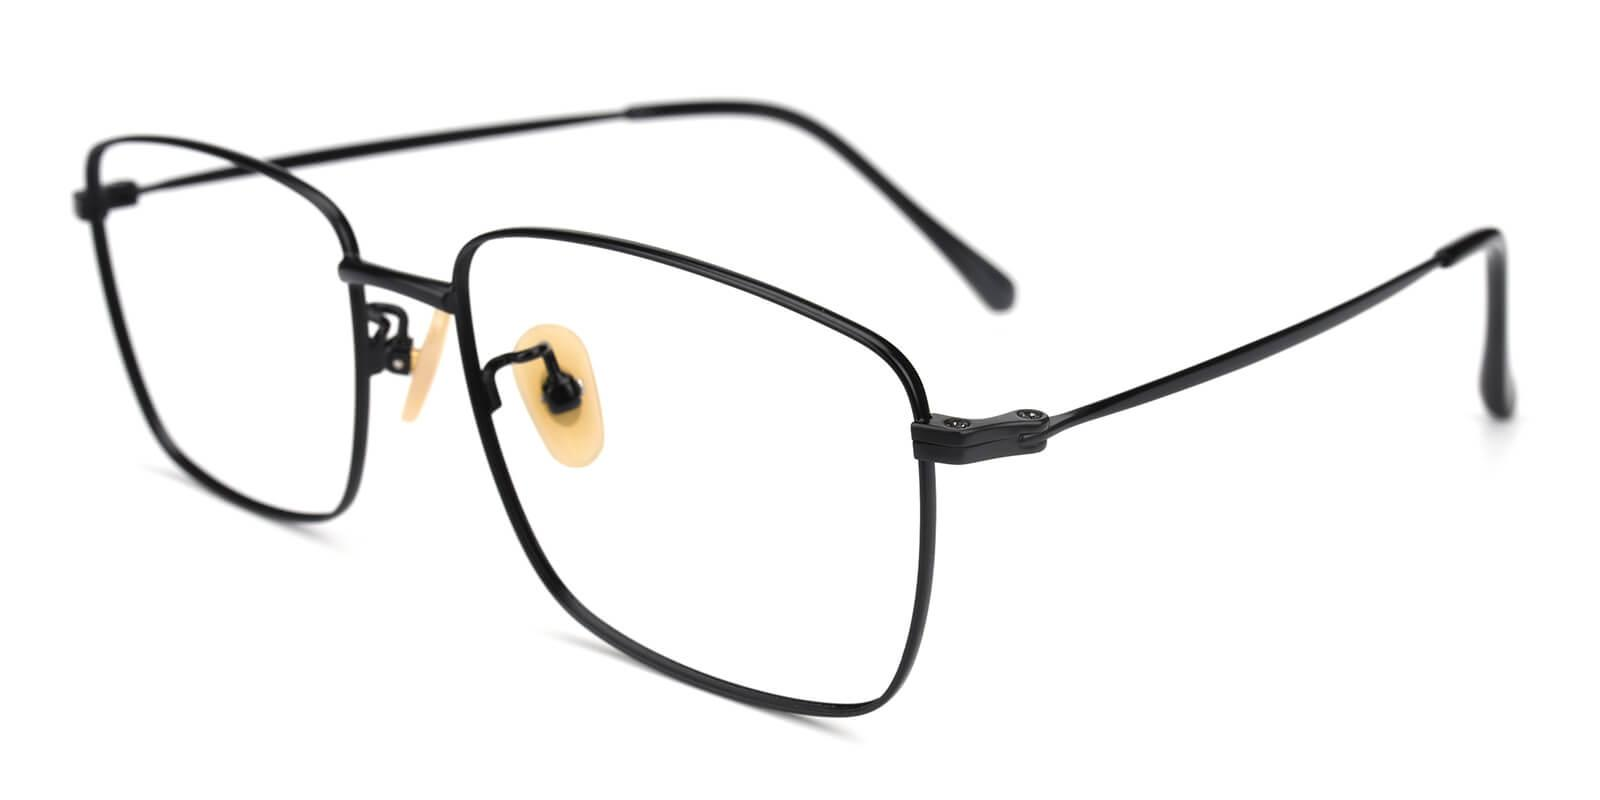 Pensieve-Black-Square-Titanium-Eyeglasses-additional1